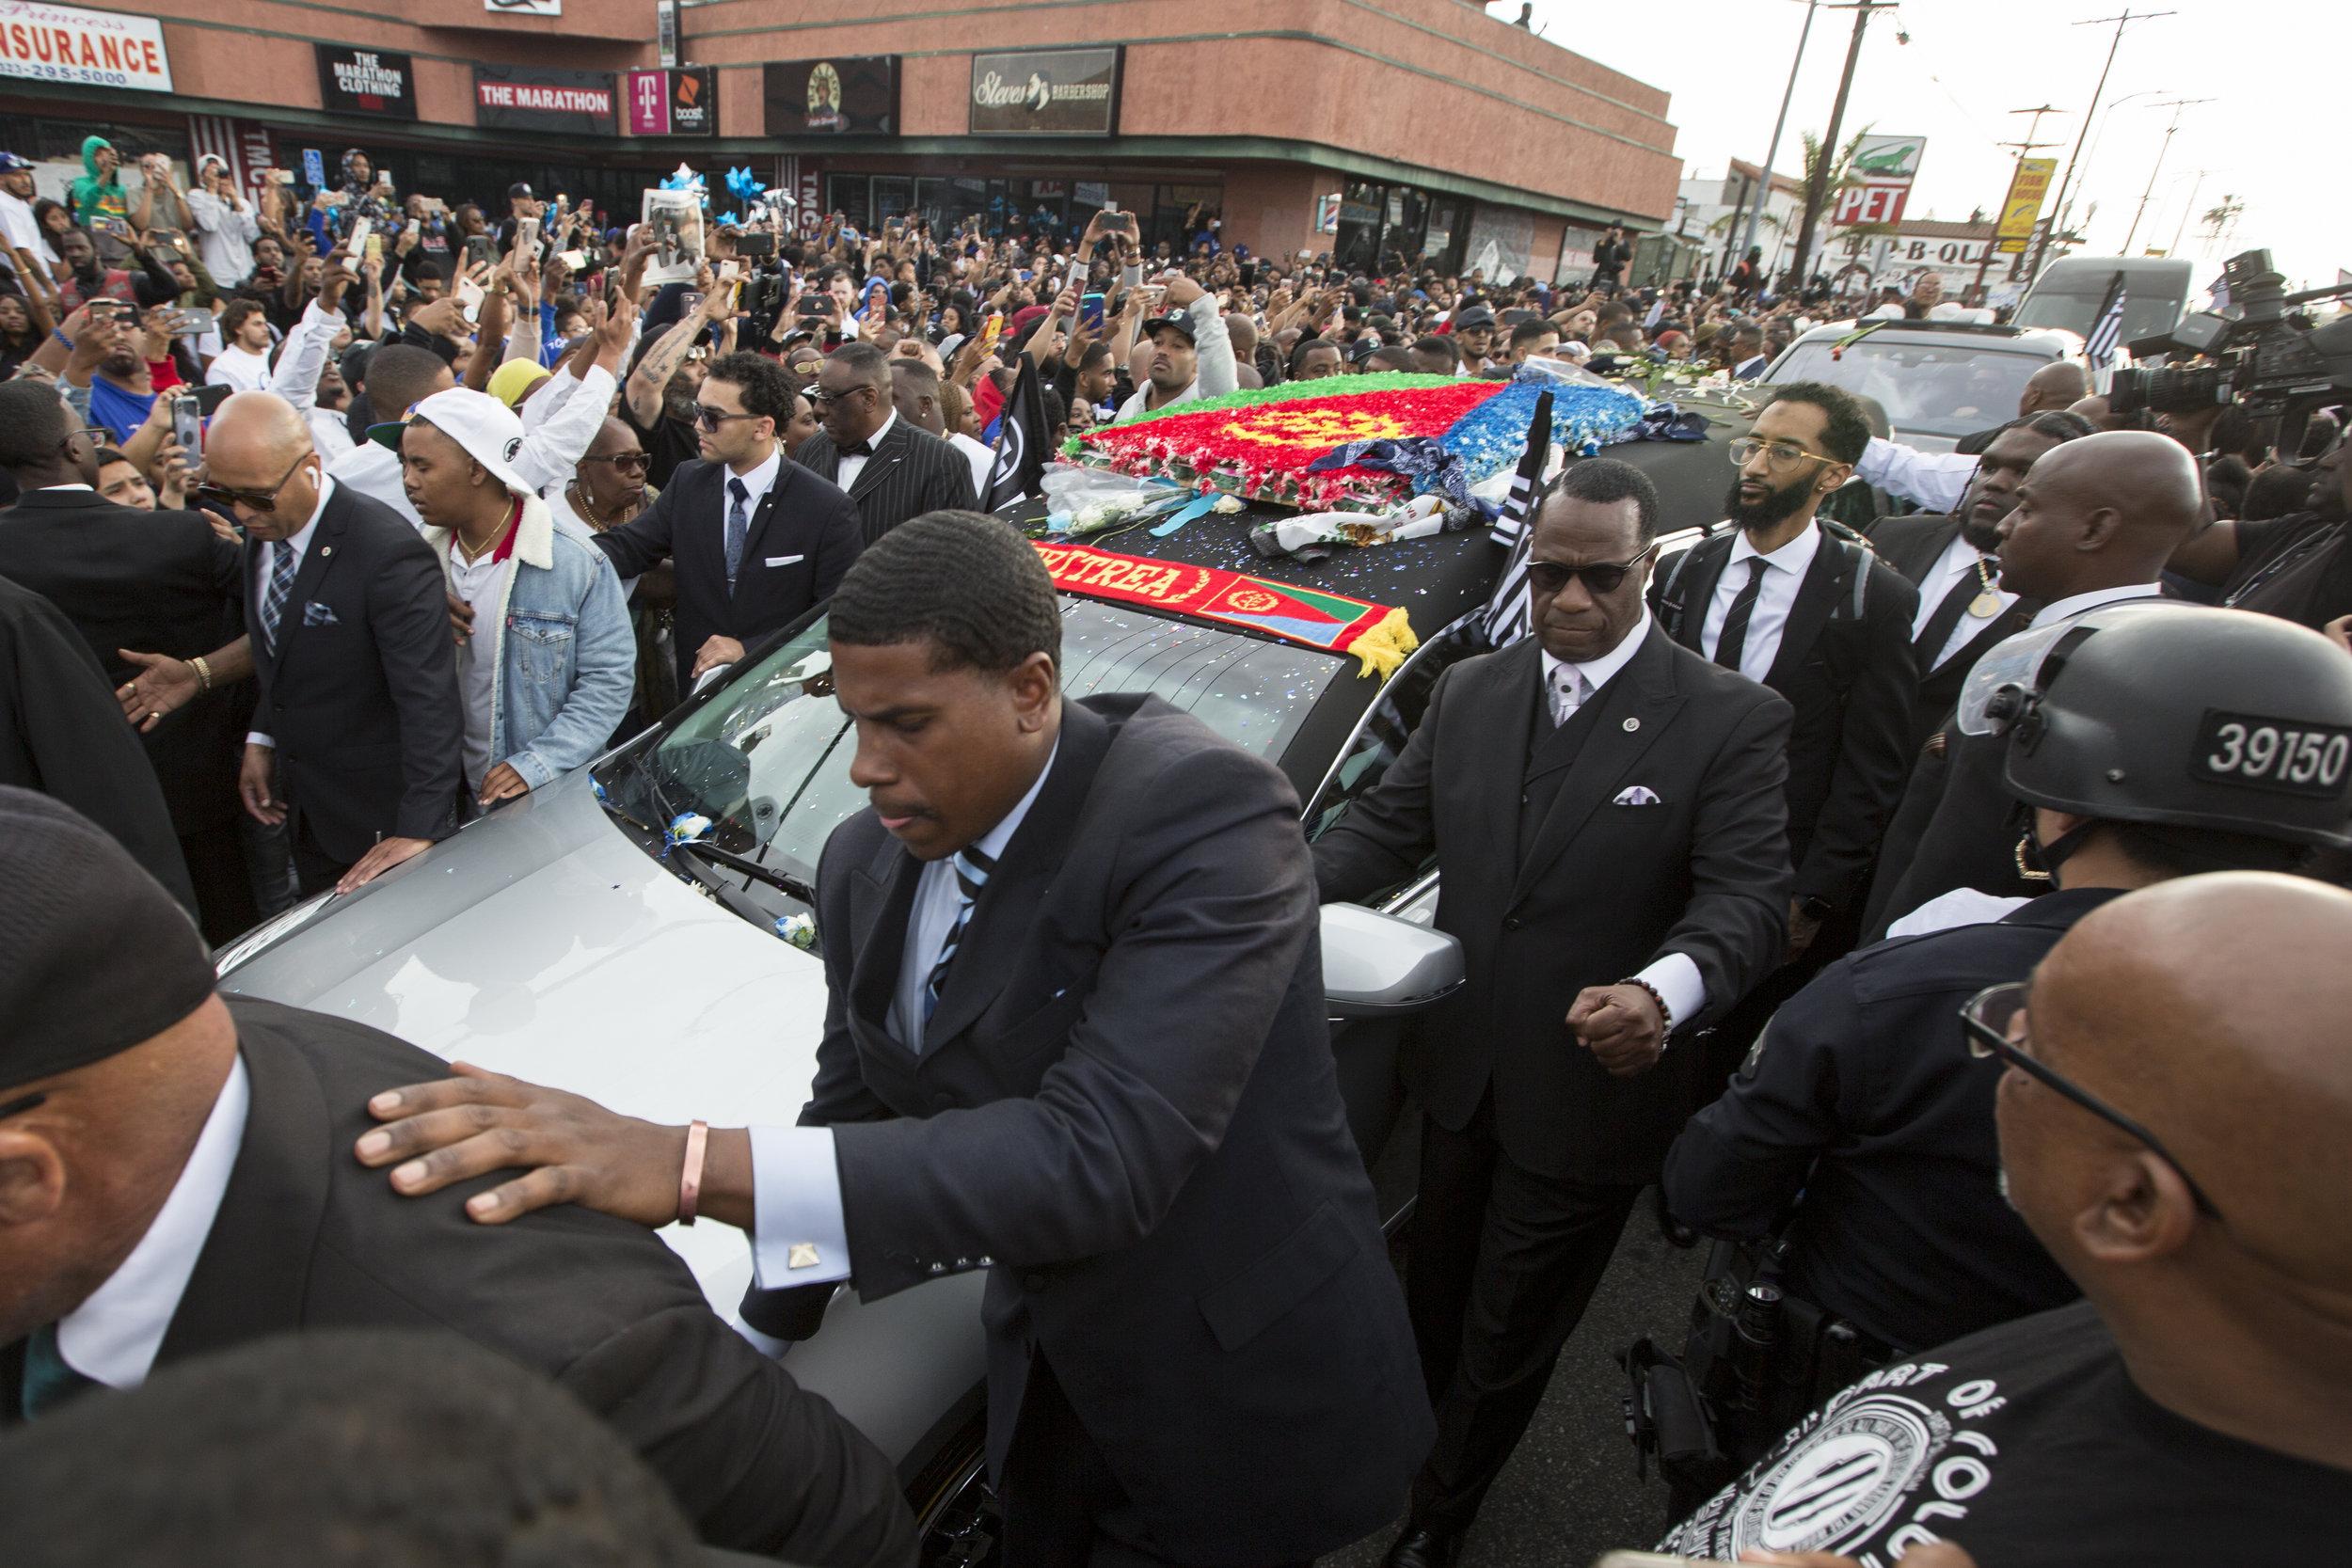 """Samiel """"Blacc Sam"""" Asghedom (right) walks alongside the hearse carrying his brother, slain rapper Nipsey Hussle, during the Celebration of Life procession  along Slauson Ave. near The Marathon Clothing store, the location of his murder, in Los Angeles, California on April 11, 2019.  The hearse carrying the casket of, Nipsey Hussle, will journey a 25.5 mile """"Victory Lap"""" through South Central and ending at the Angelus Funeral home to allow his fans, who could not attend the ceremony, to say goodbye.  (Jose Lopez)"""